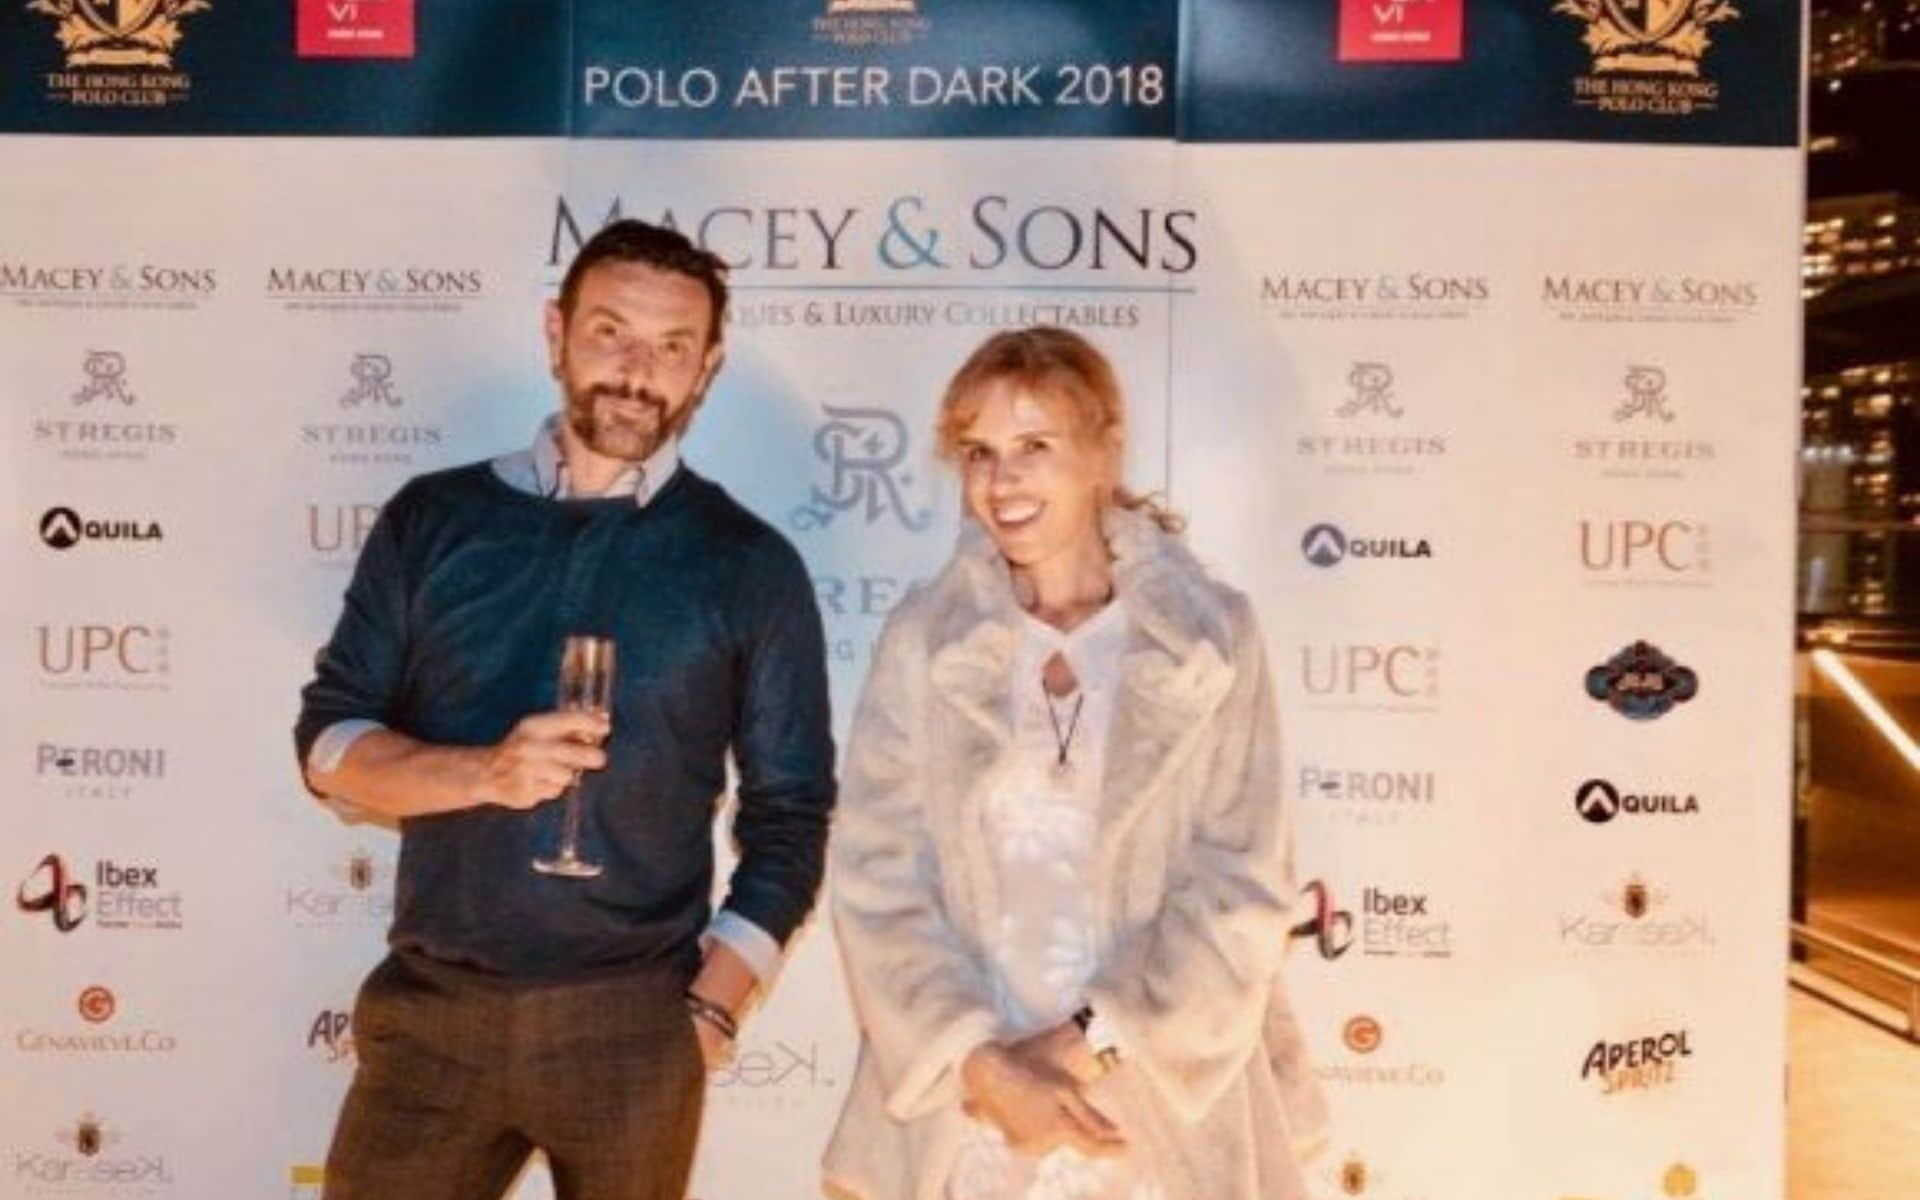 Philippe Joly - Polo After Dark 2018 Party